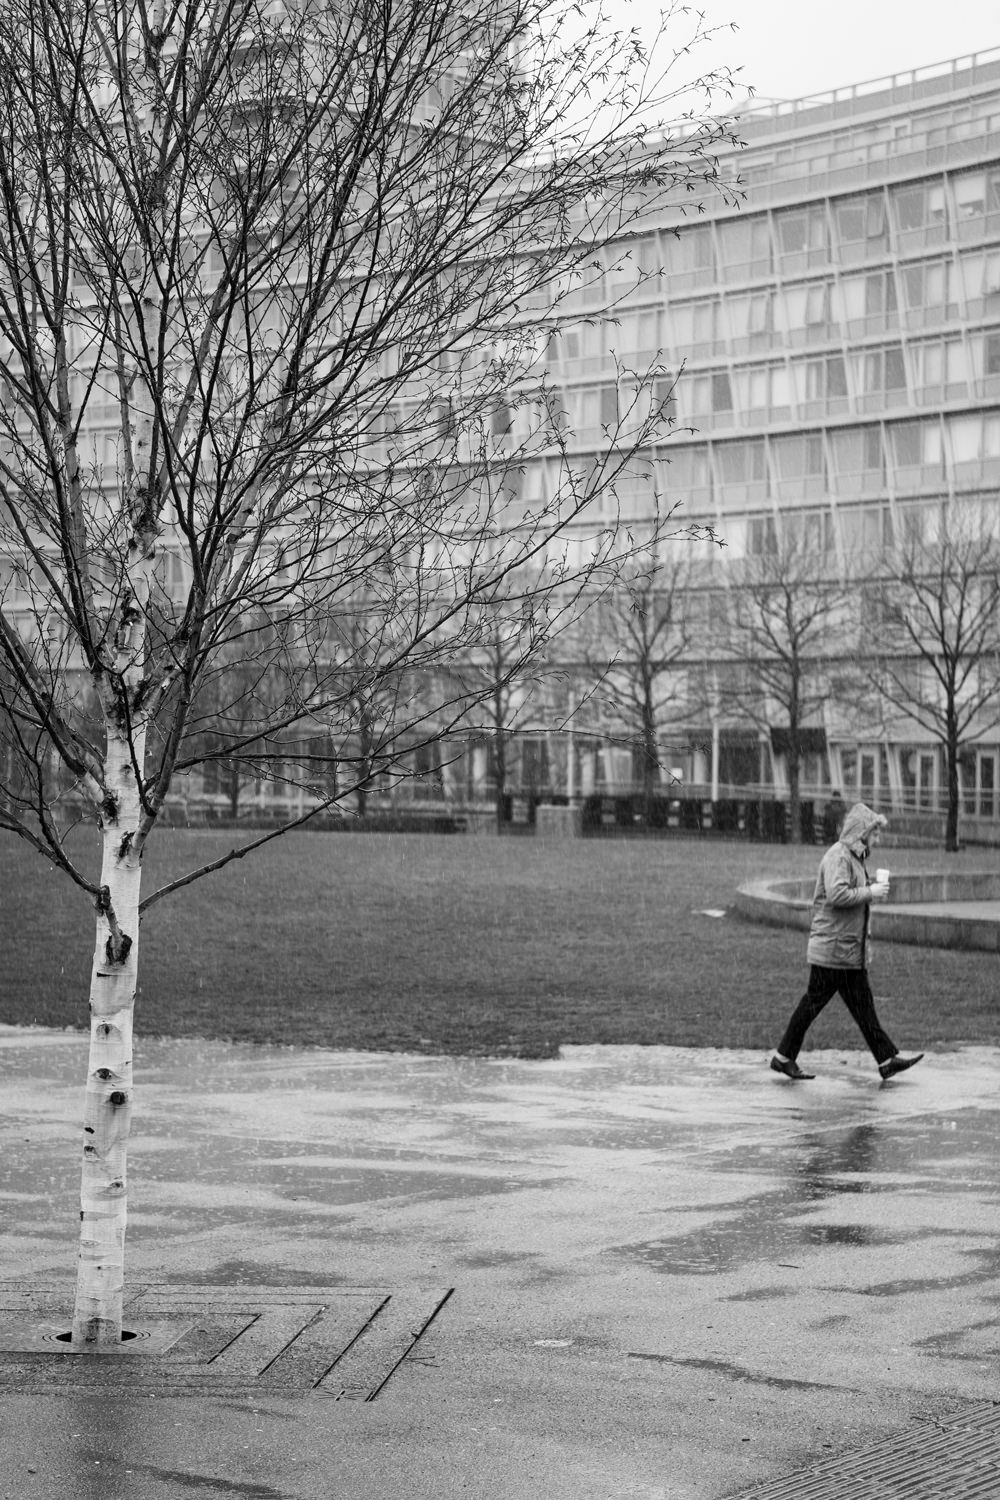 A man walking through the rain past a tree and multi-storey building. He has his hood up and is holding a hot drink